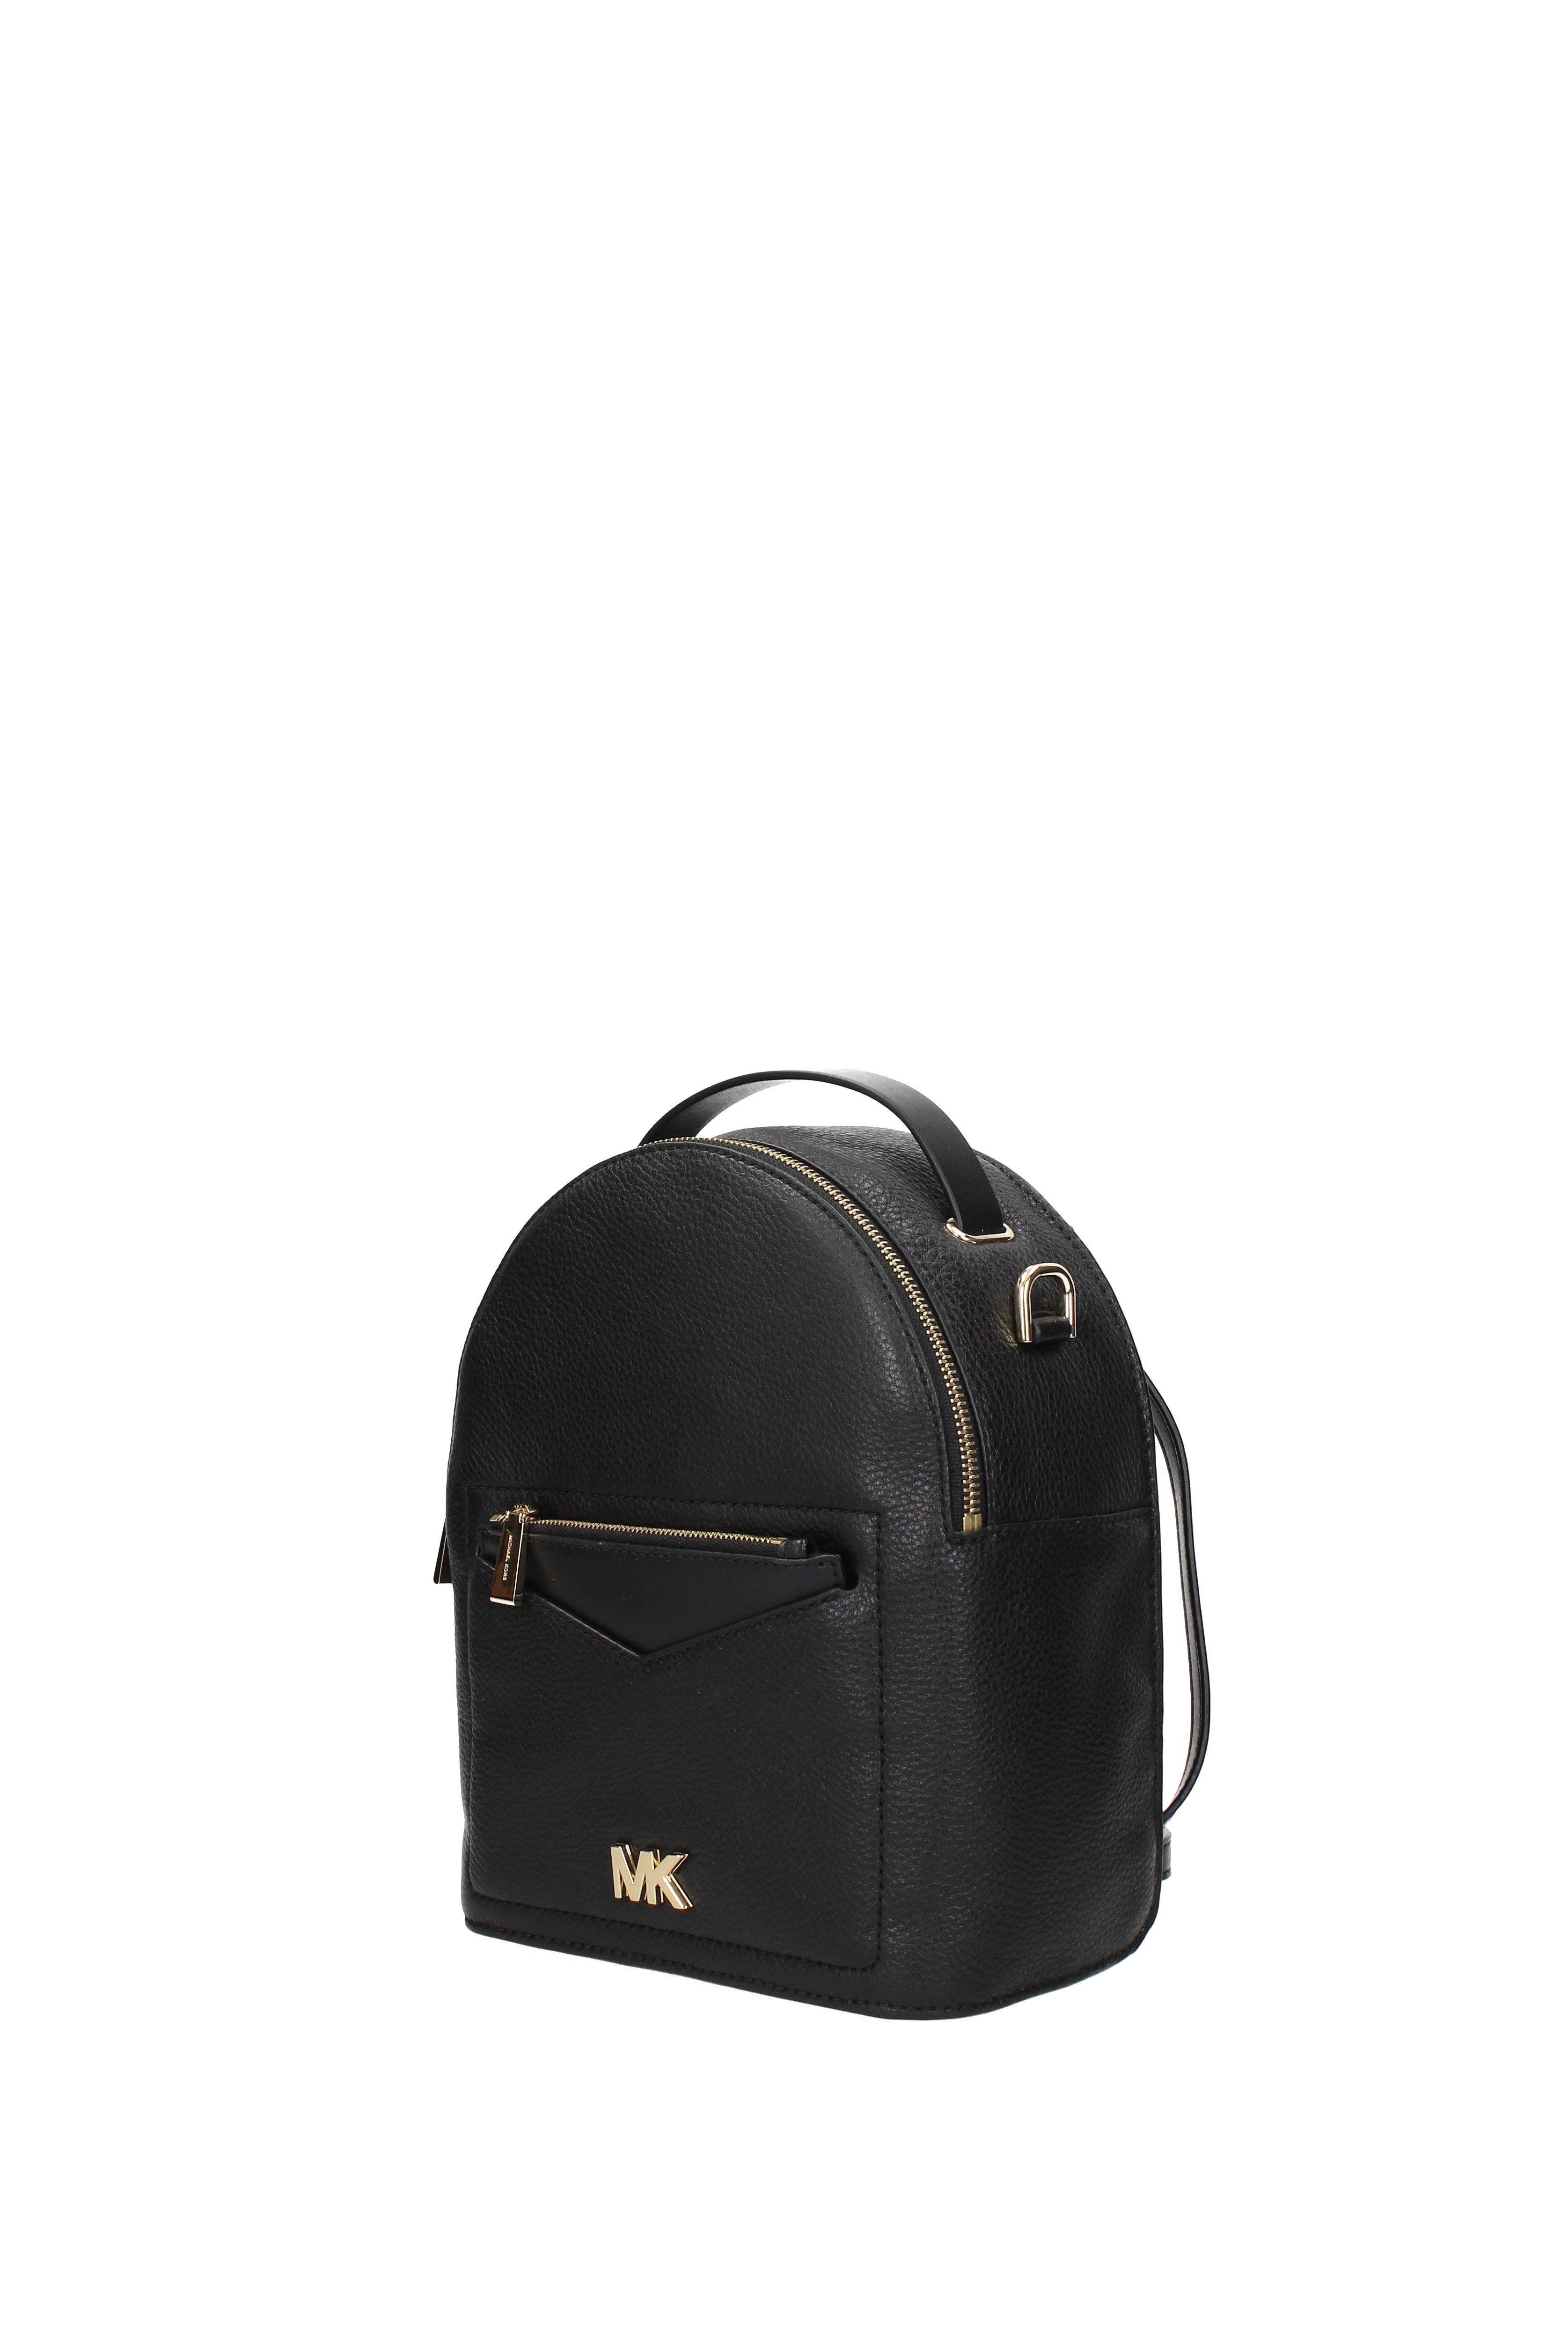 d326d62b174a Michael Kors - Backpacks And Bumbags Jessa Women Black - Lyst. View  fullscreen